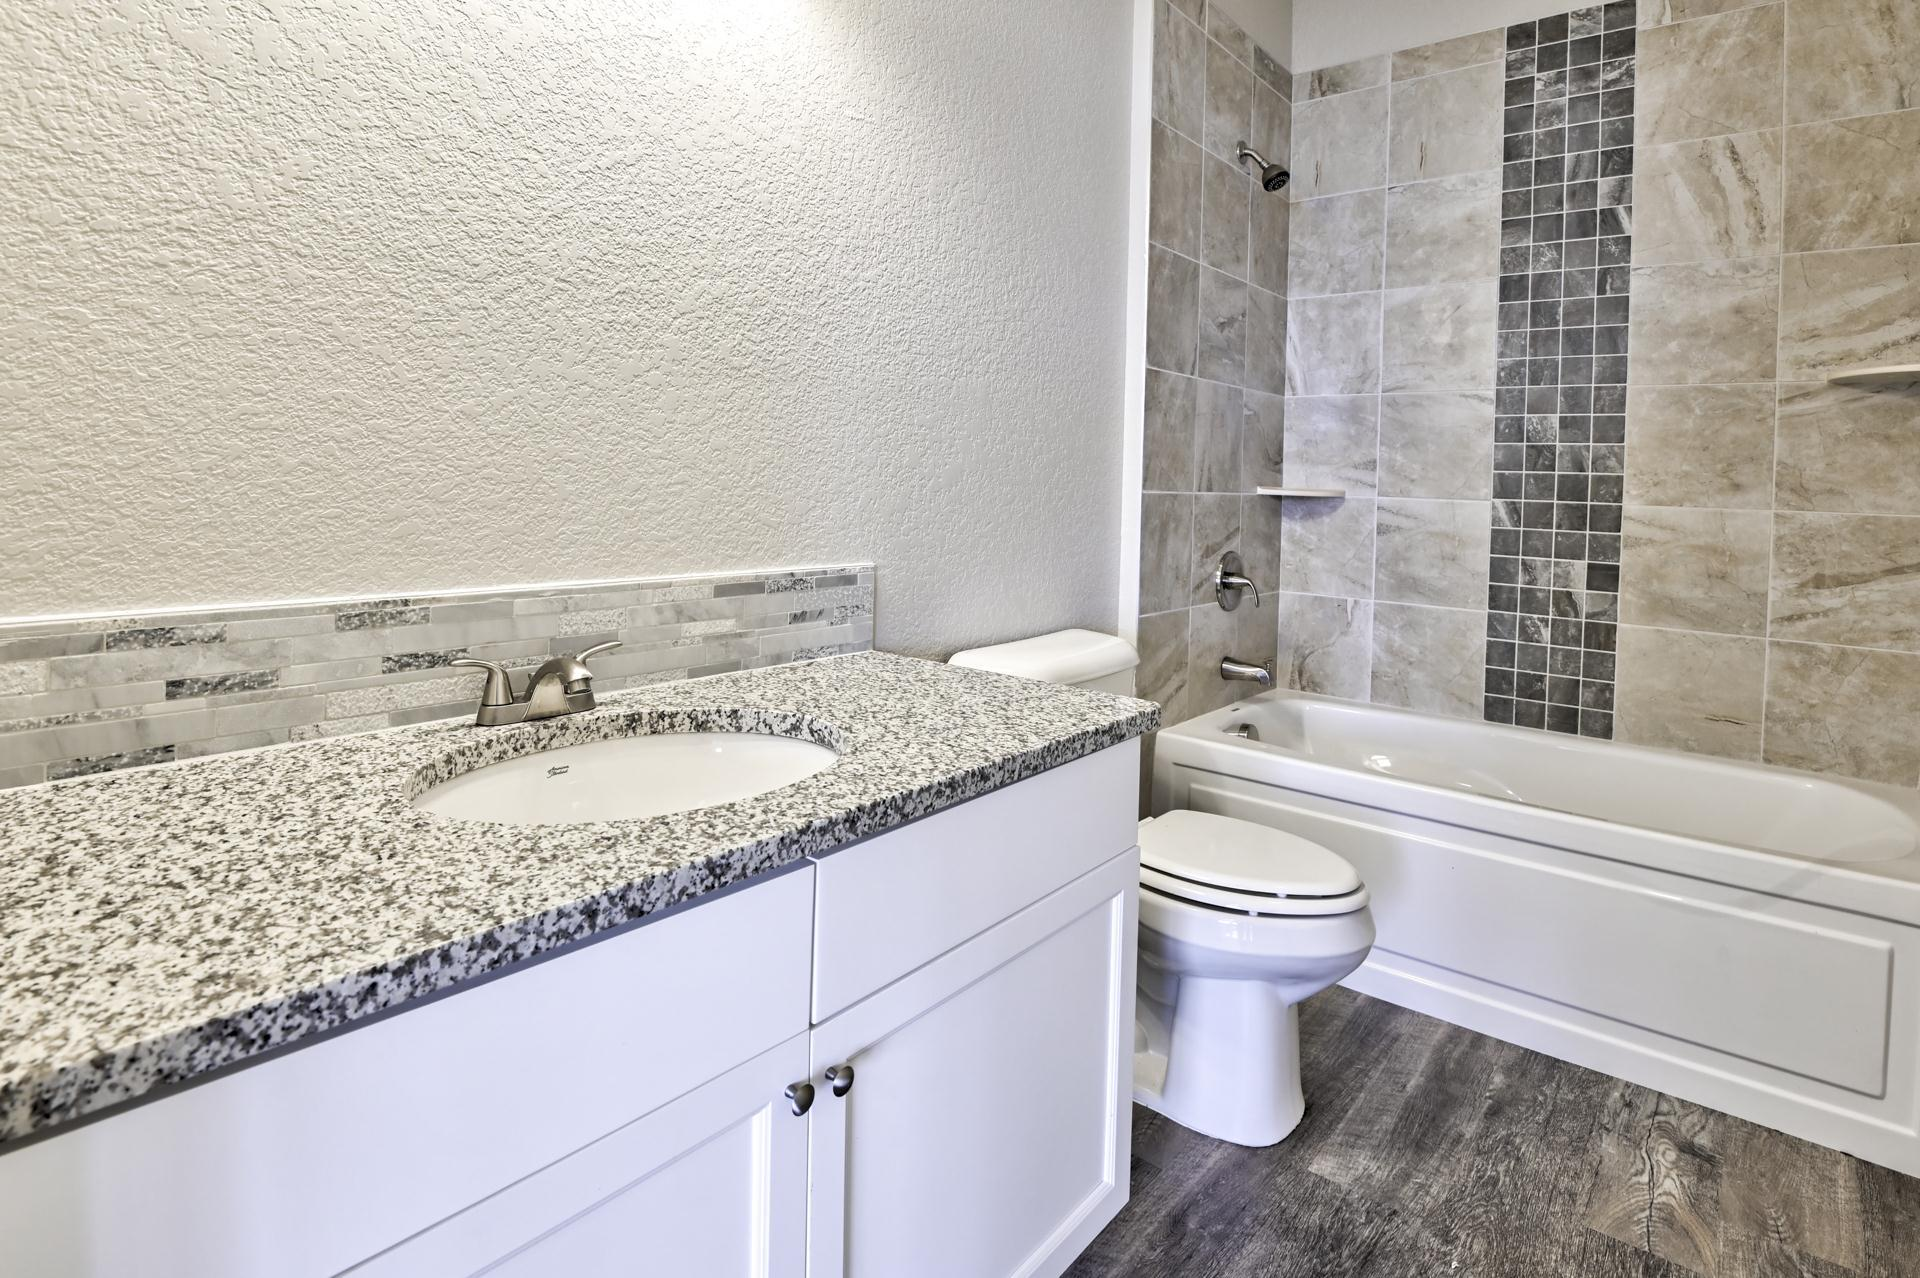 Bathroom featured in the Whisper By Westover Homes in Pueblo, CO